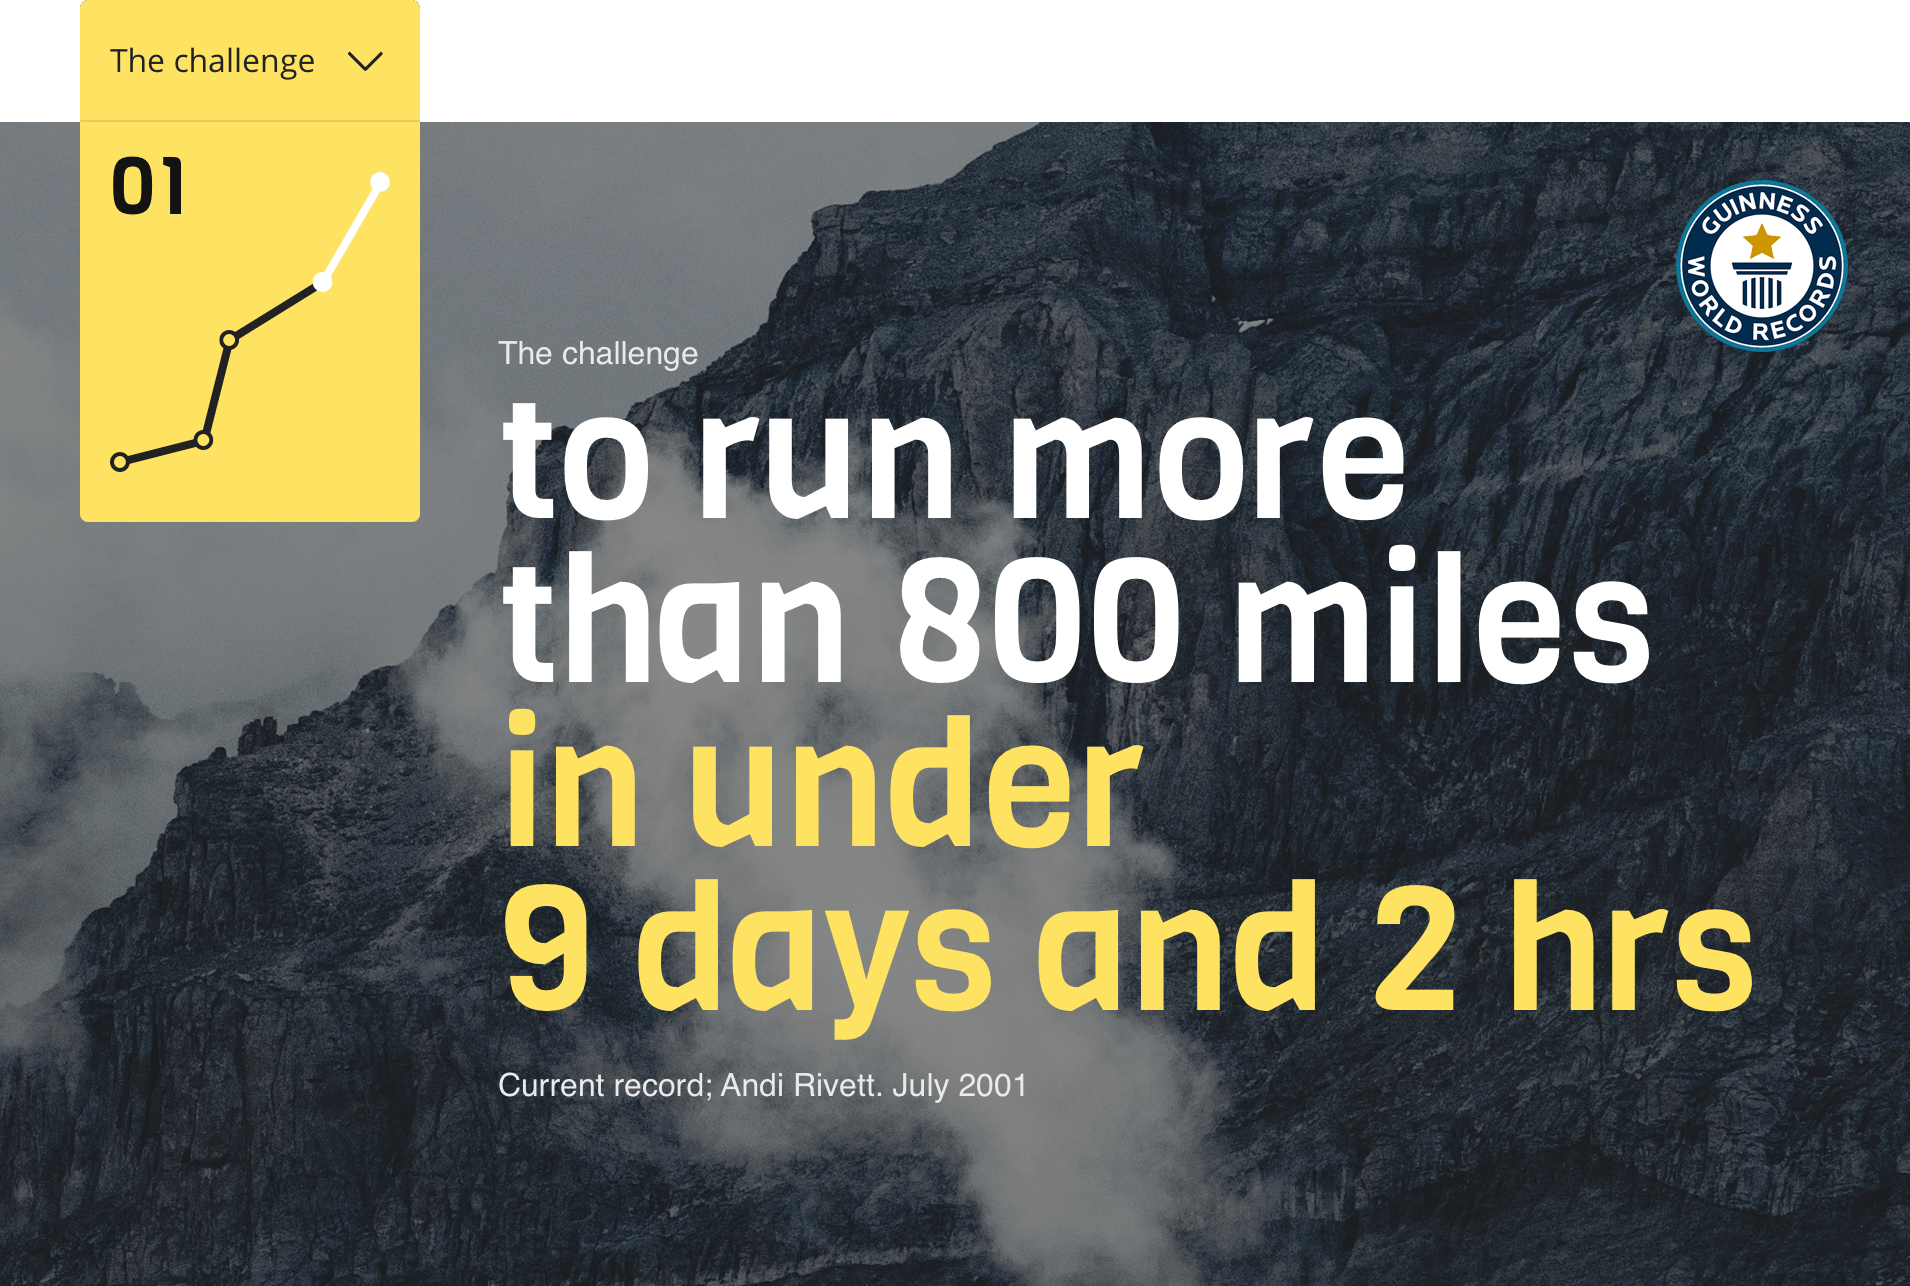 The Challenge - On 25th May 2019, I started an attempt to break a world record for running from the bottom of the UK to the top – Land's End to John o' Groats (LEJOG).To do that I needed to run around 100 miles a day.- Distance: Nearly 850 miles- Time: Less than 9 days, 2 hours, 26 minutes- Running: Around 100 miles/18 hours per day- Sleep: 4 hours per night